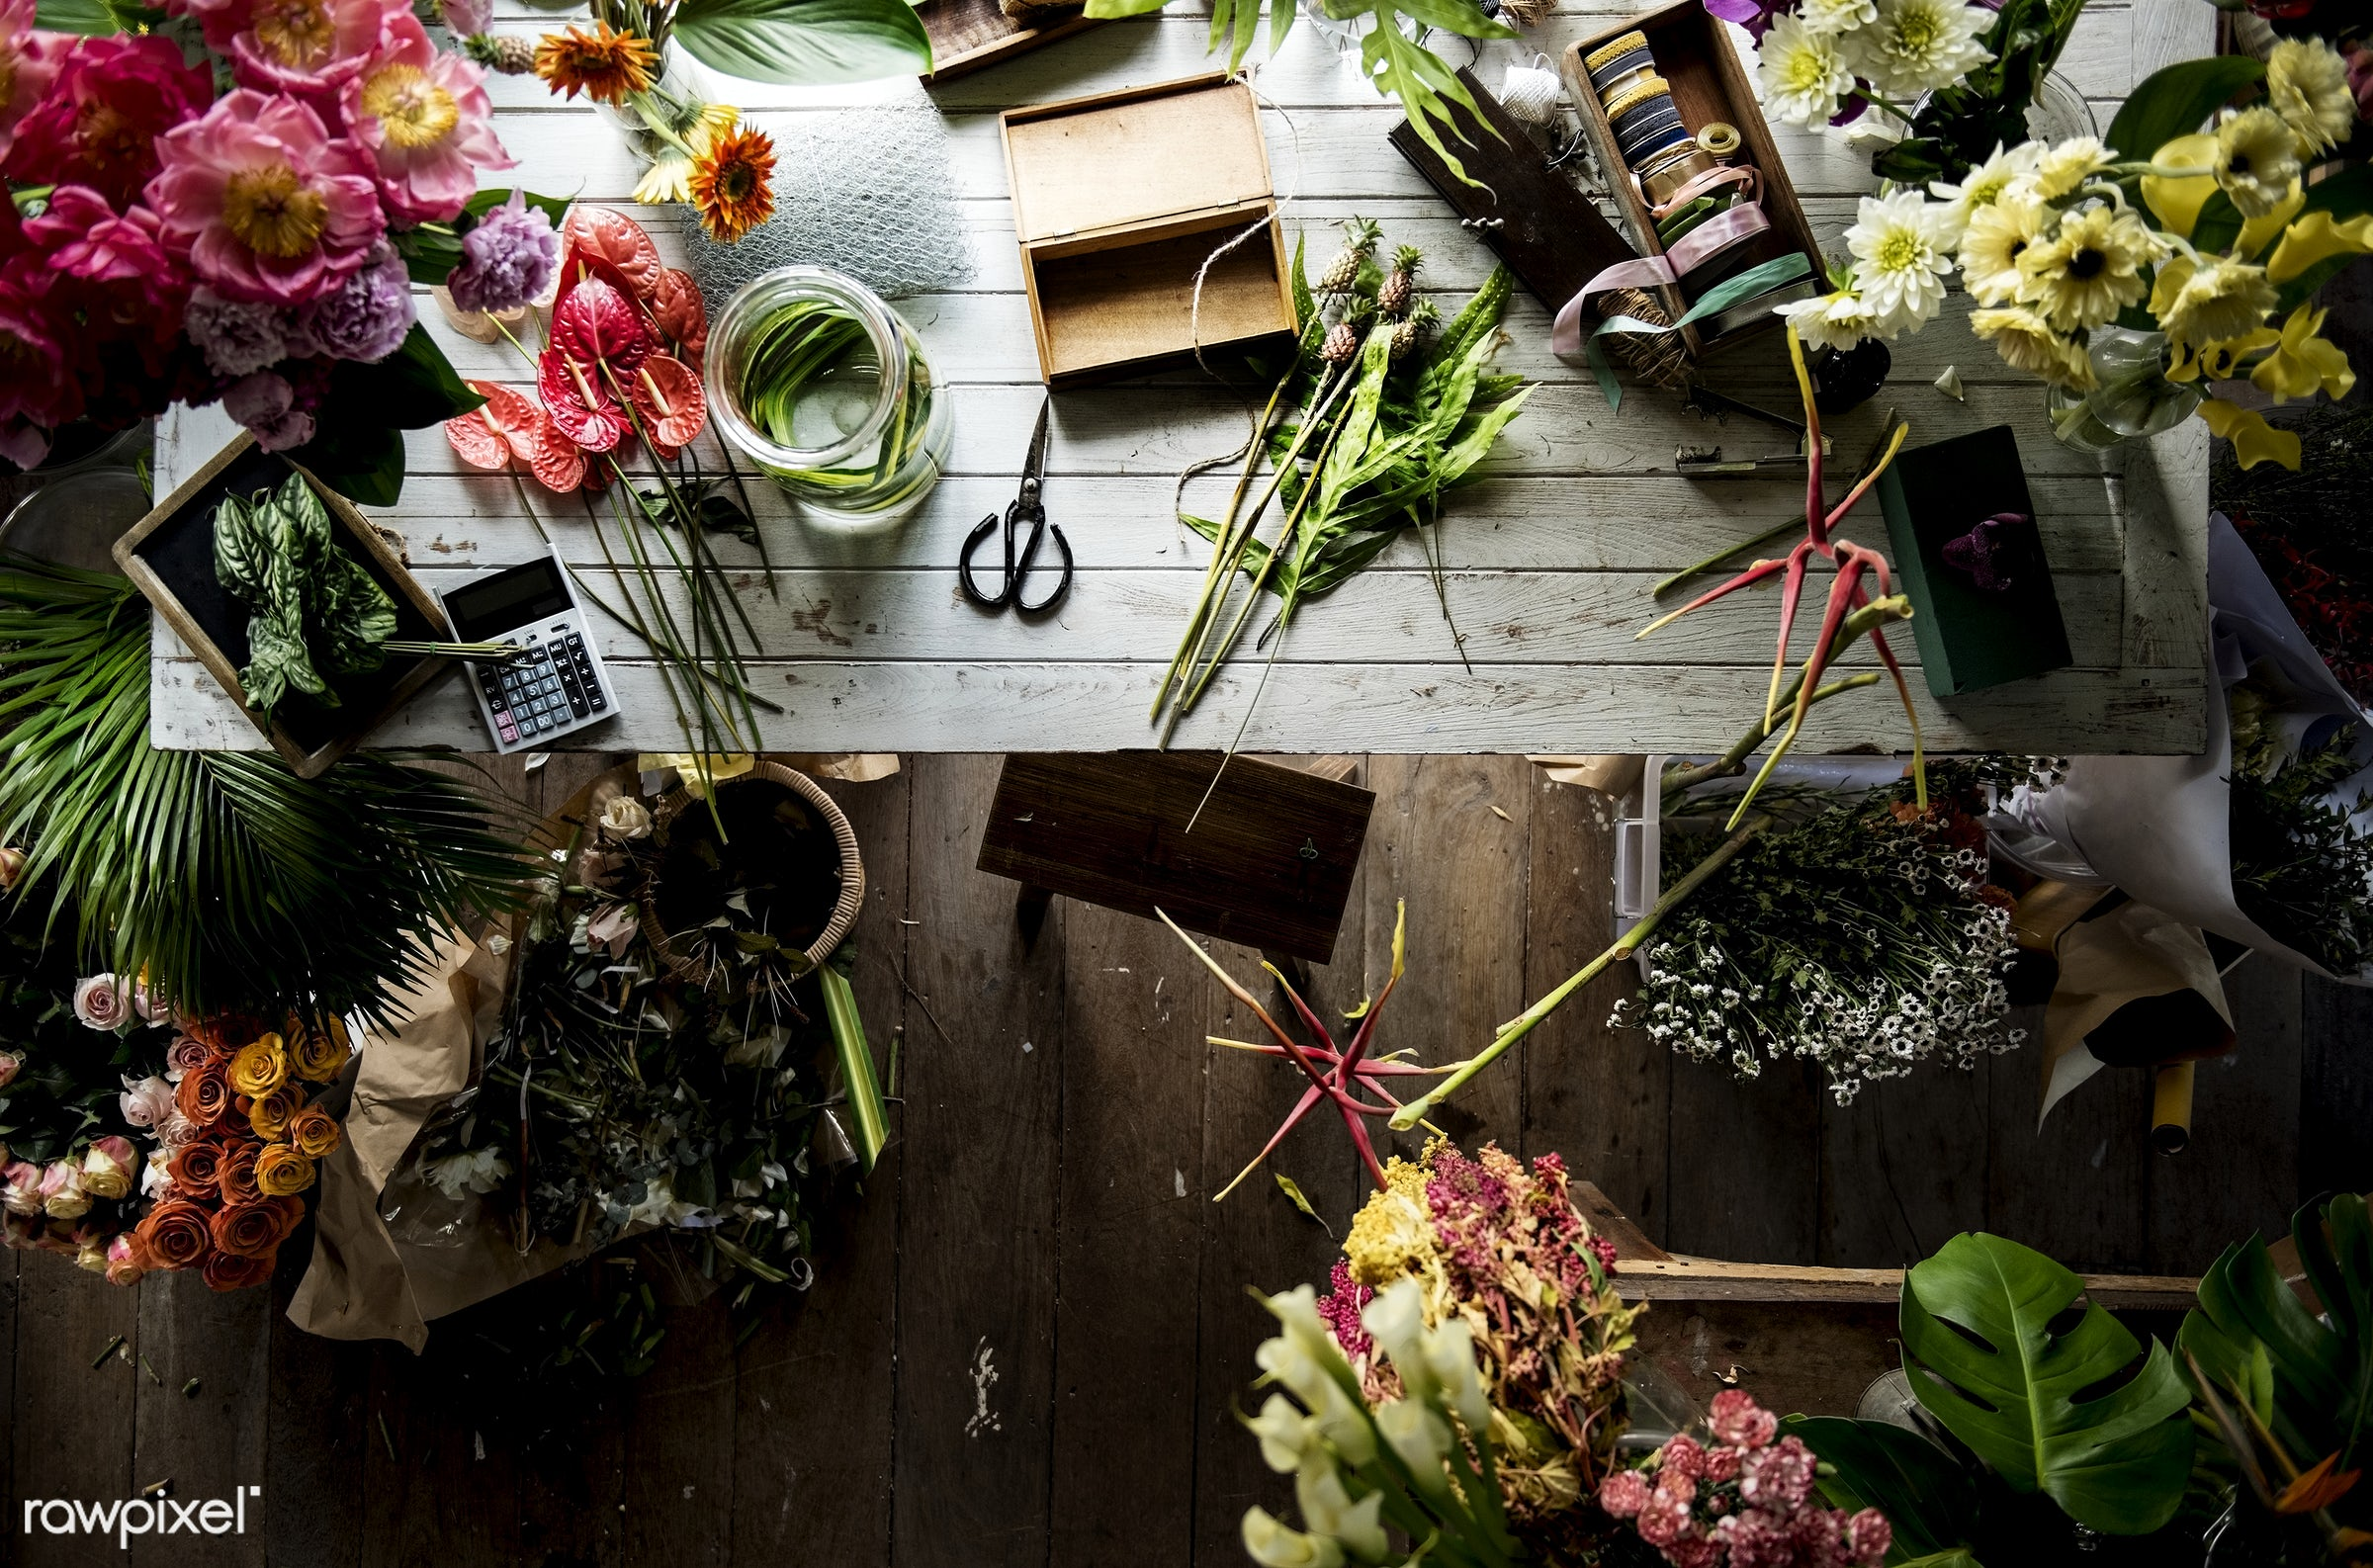 nobody, store, small business, indoors, self-employed, business, nature, style, flowers, vintage, decoration, romantic,...